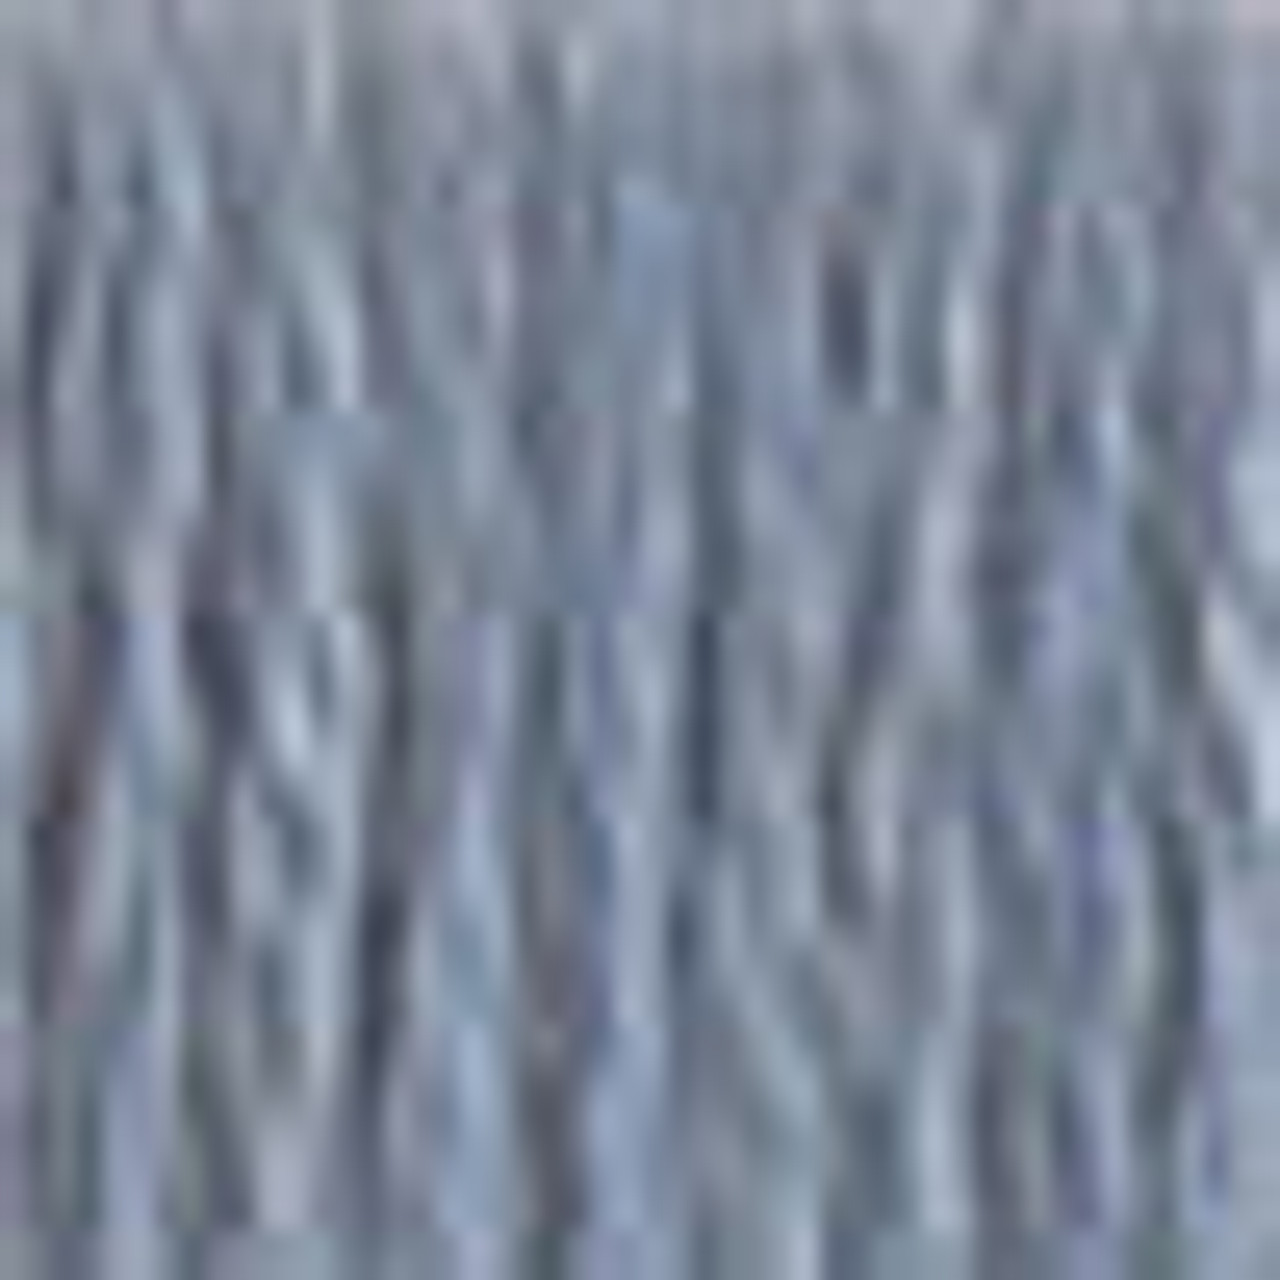 DMC # 414 Dark Steel Gray Floss / Thread